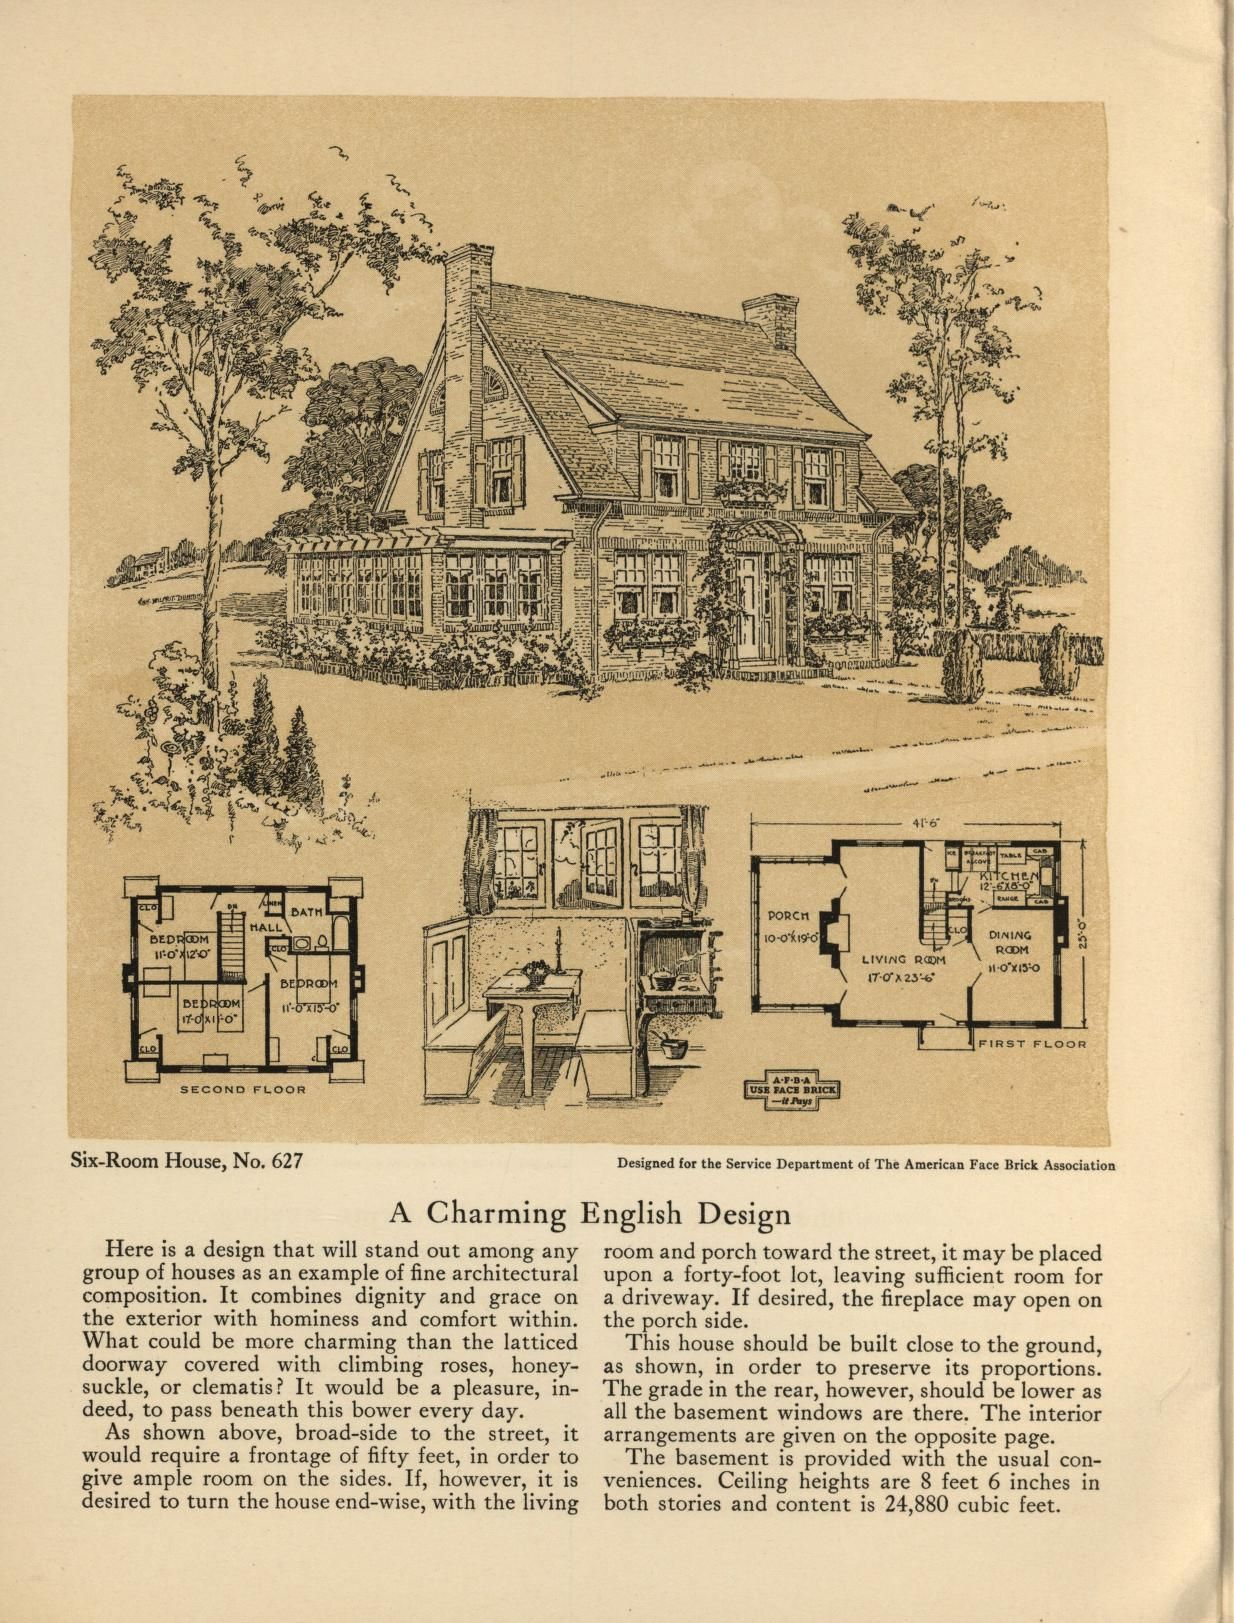 Six Room Face Brick Bungalow And Small House Plans 2nd Ed Brick House Plans Vintage House Plans House Plans